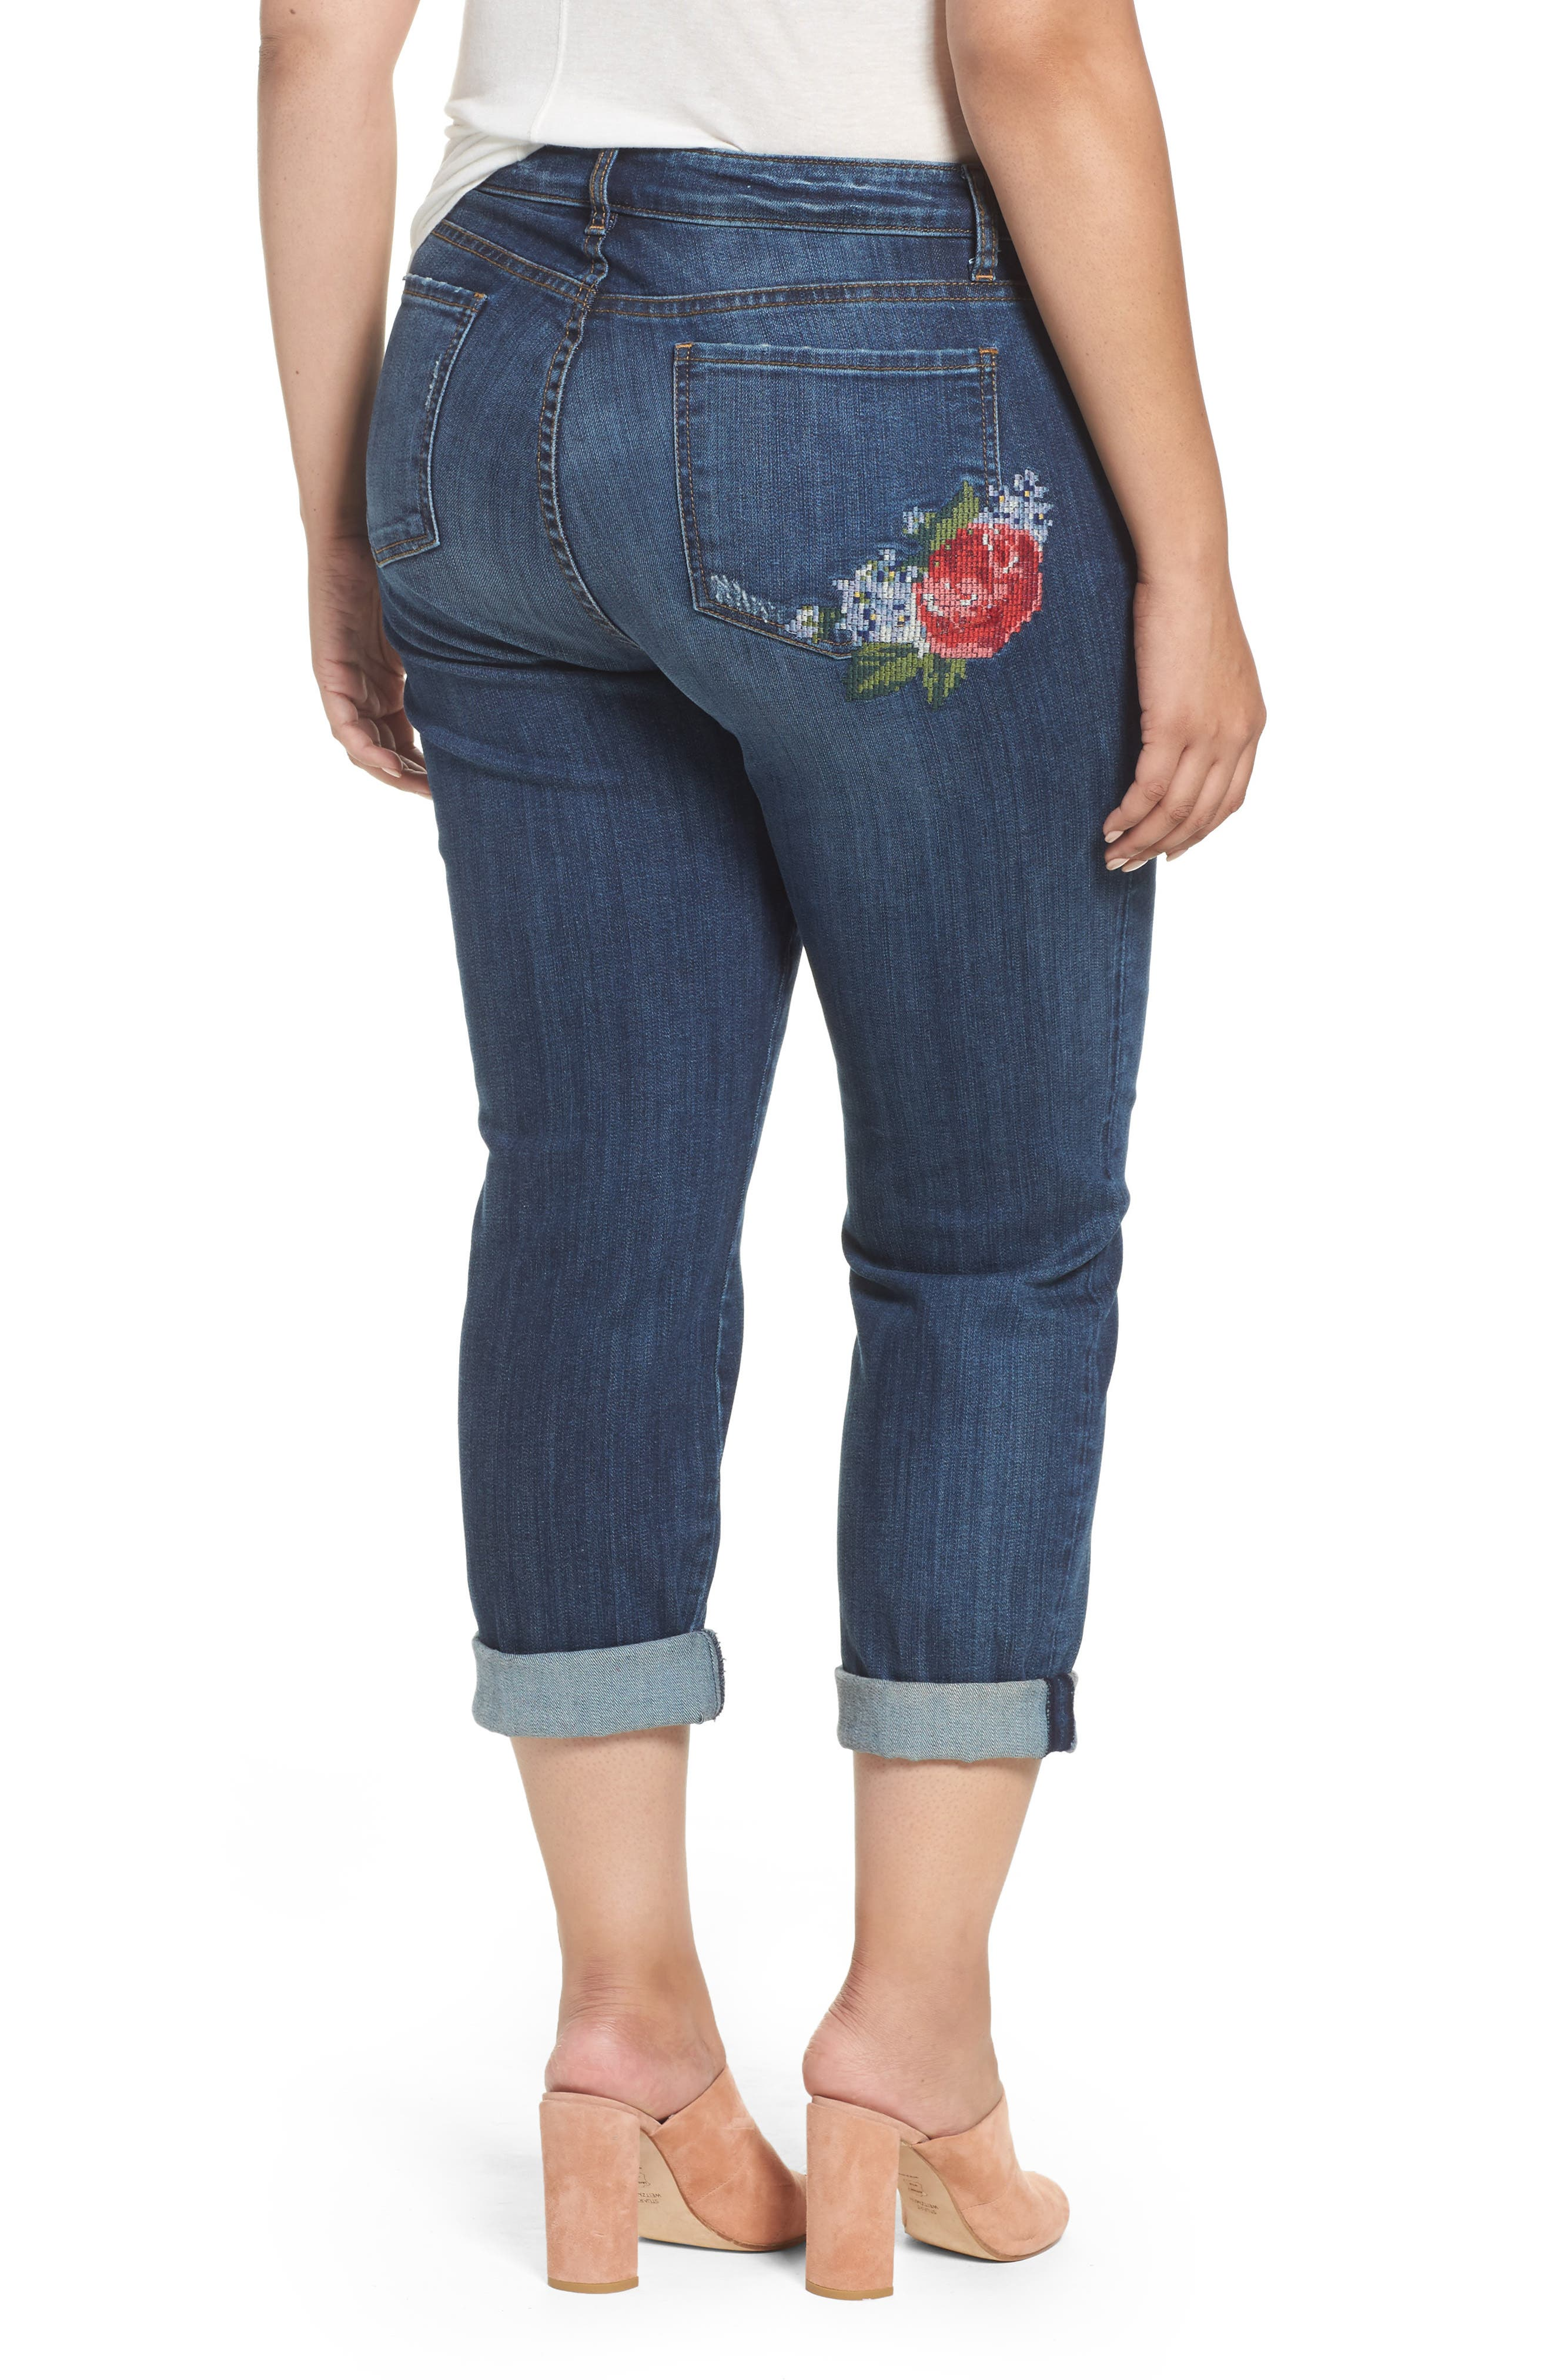 Catherine Embroidered Boyfriend Jeans,                             Alternate thumbnail 2, color,                             400